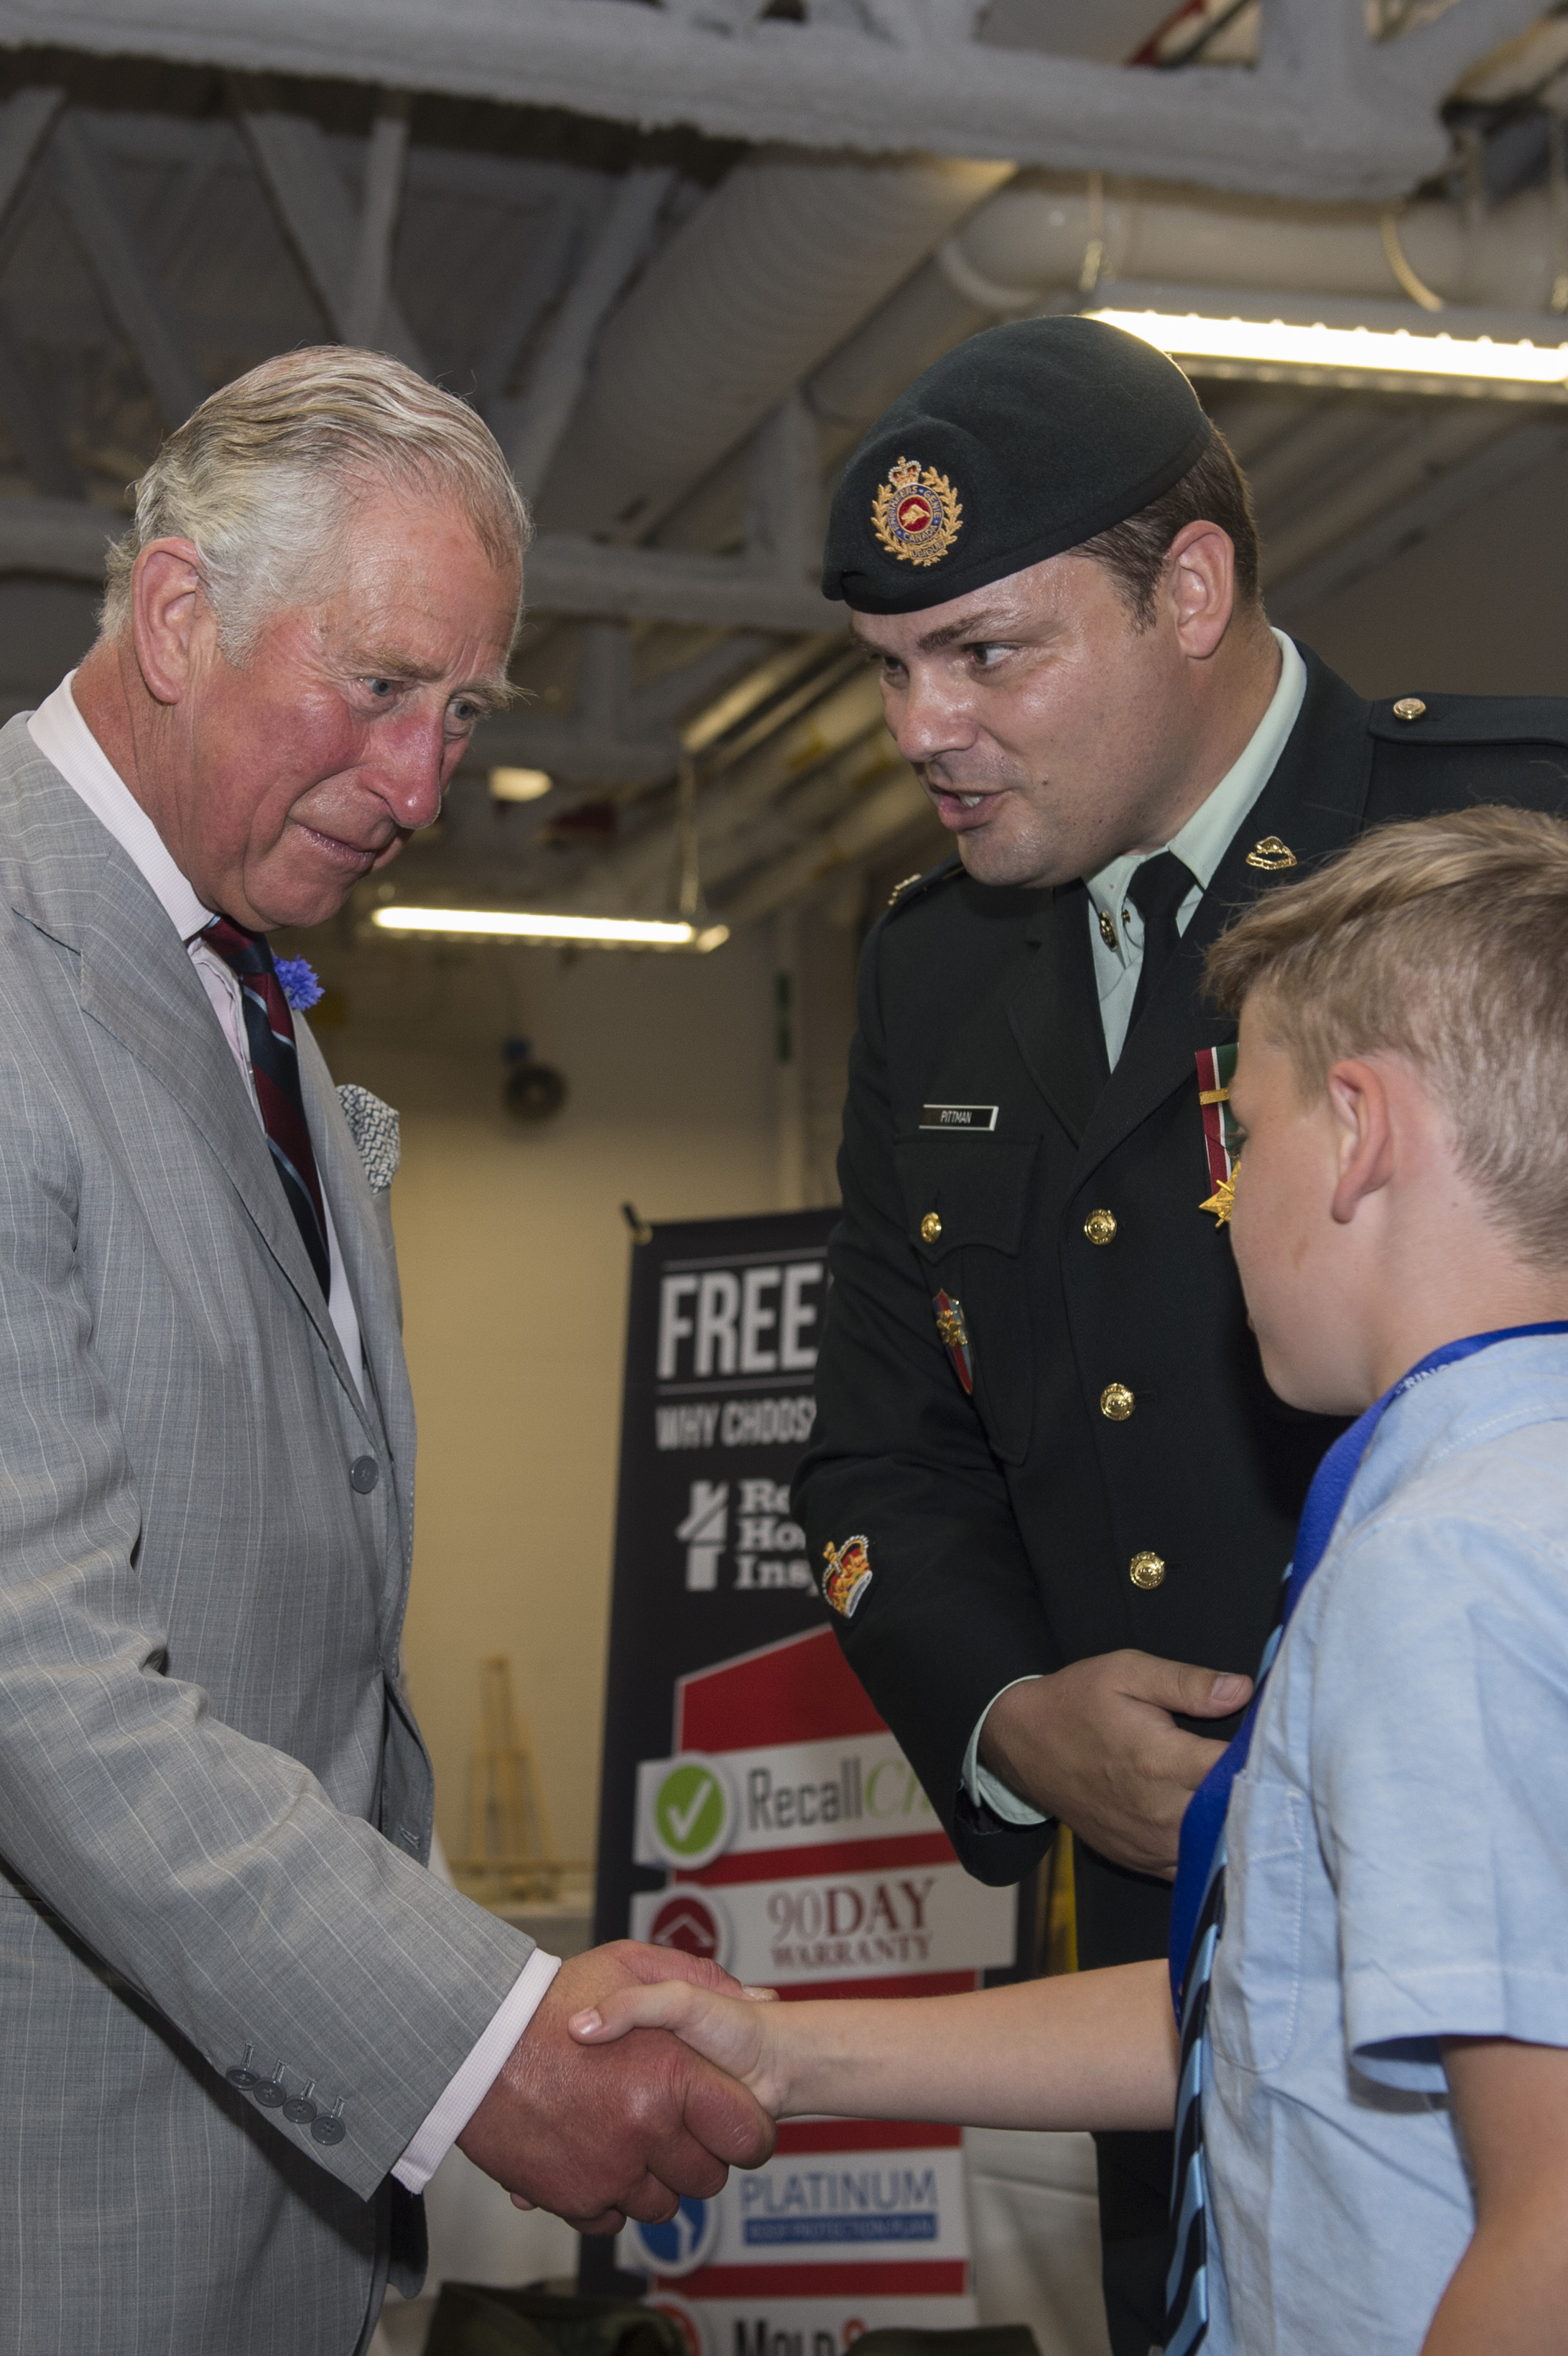 Prince Charles shakes hands with Cade Pittman, son of Warrant Officer Damien Pittman, during his visit to the Canadian Army Advanced Warfare Centre in Trenton, Ontario, on June 30, 2017. PHOTO: Ryan Moulton, TN11-2017-0398-029